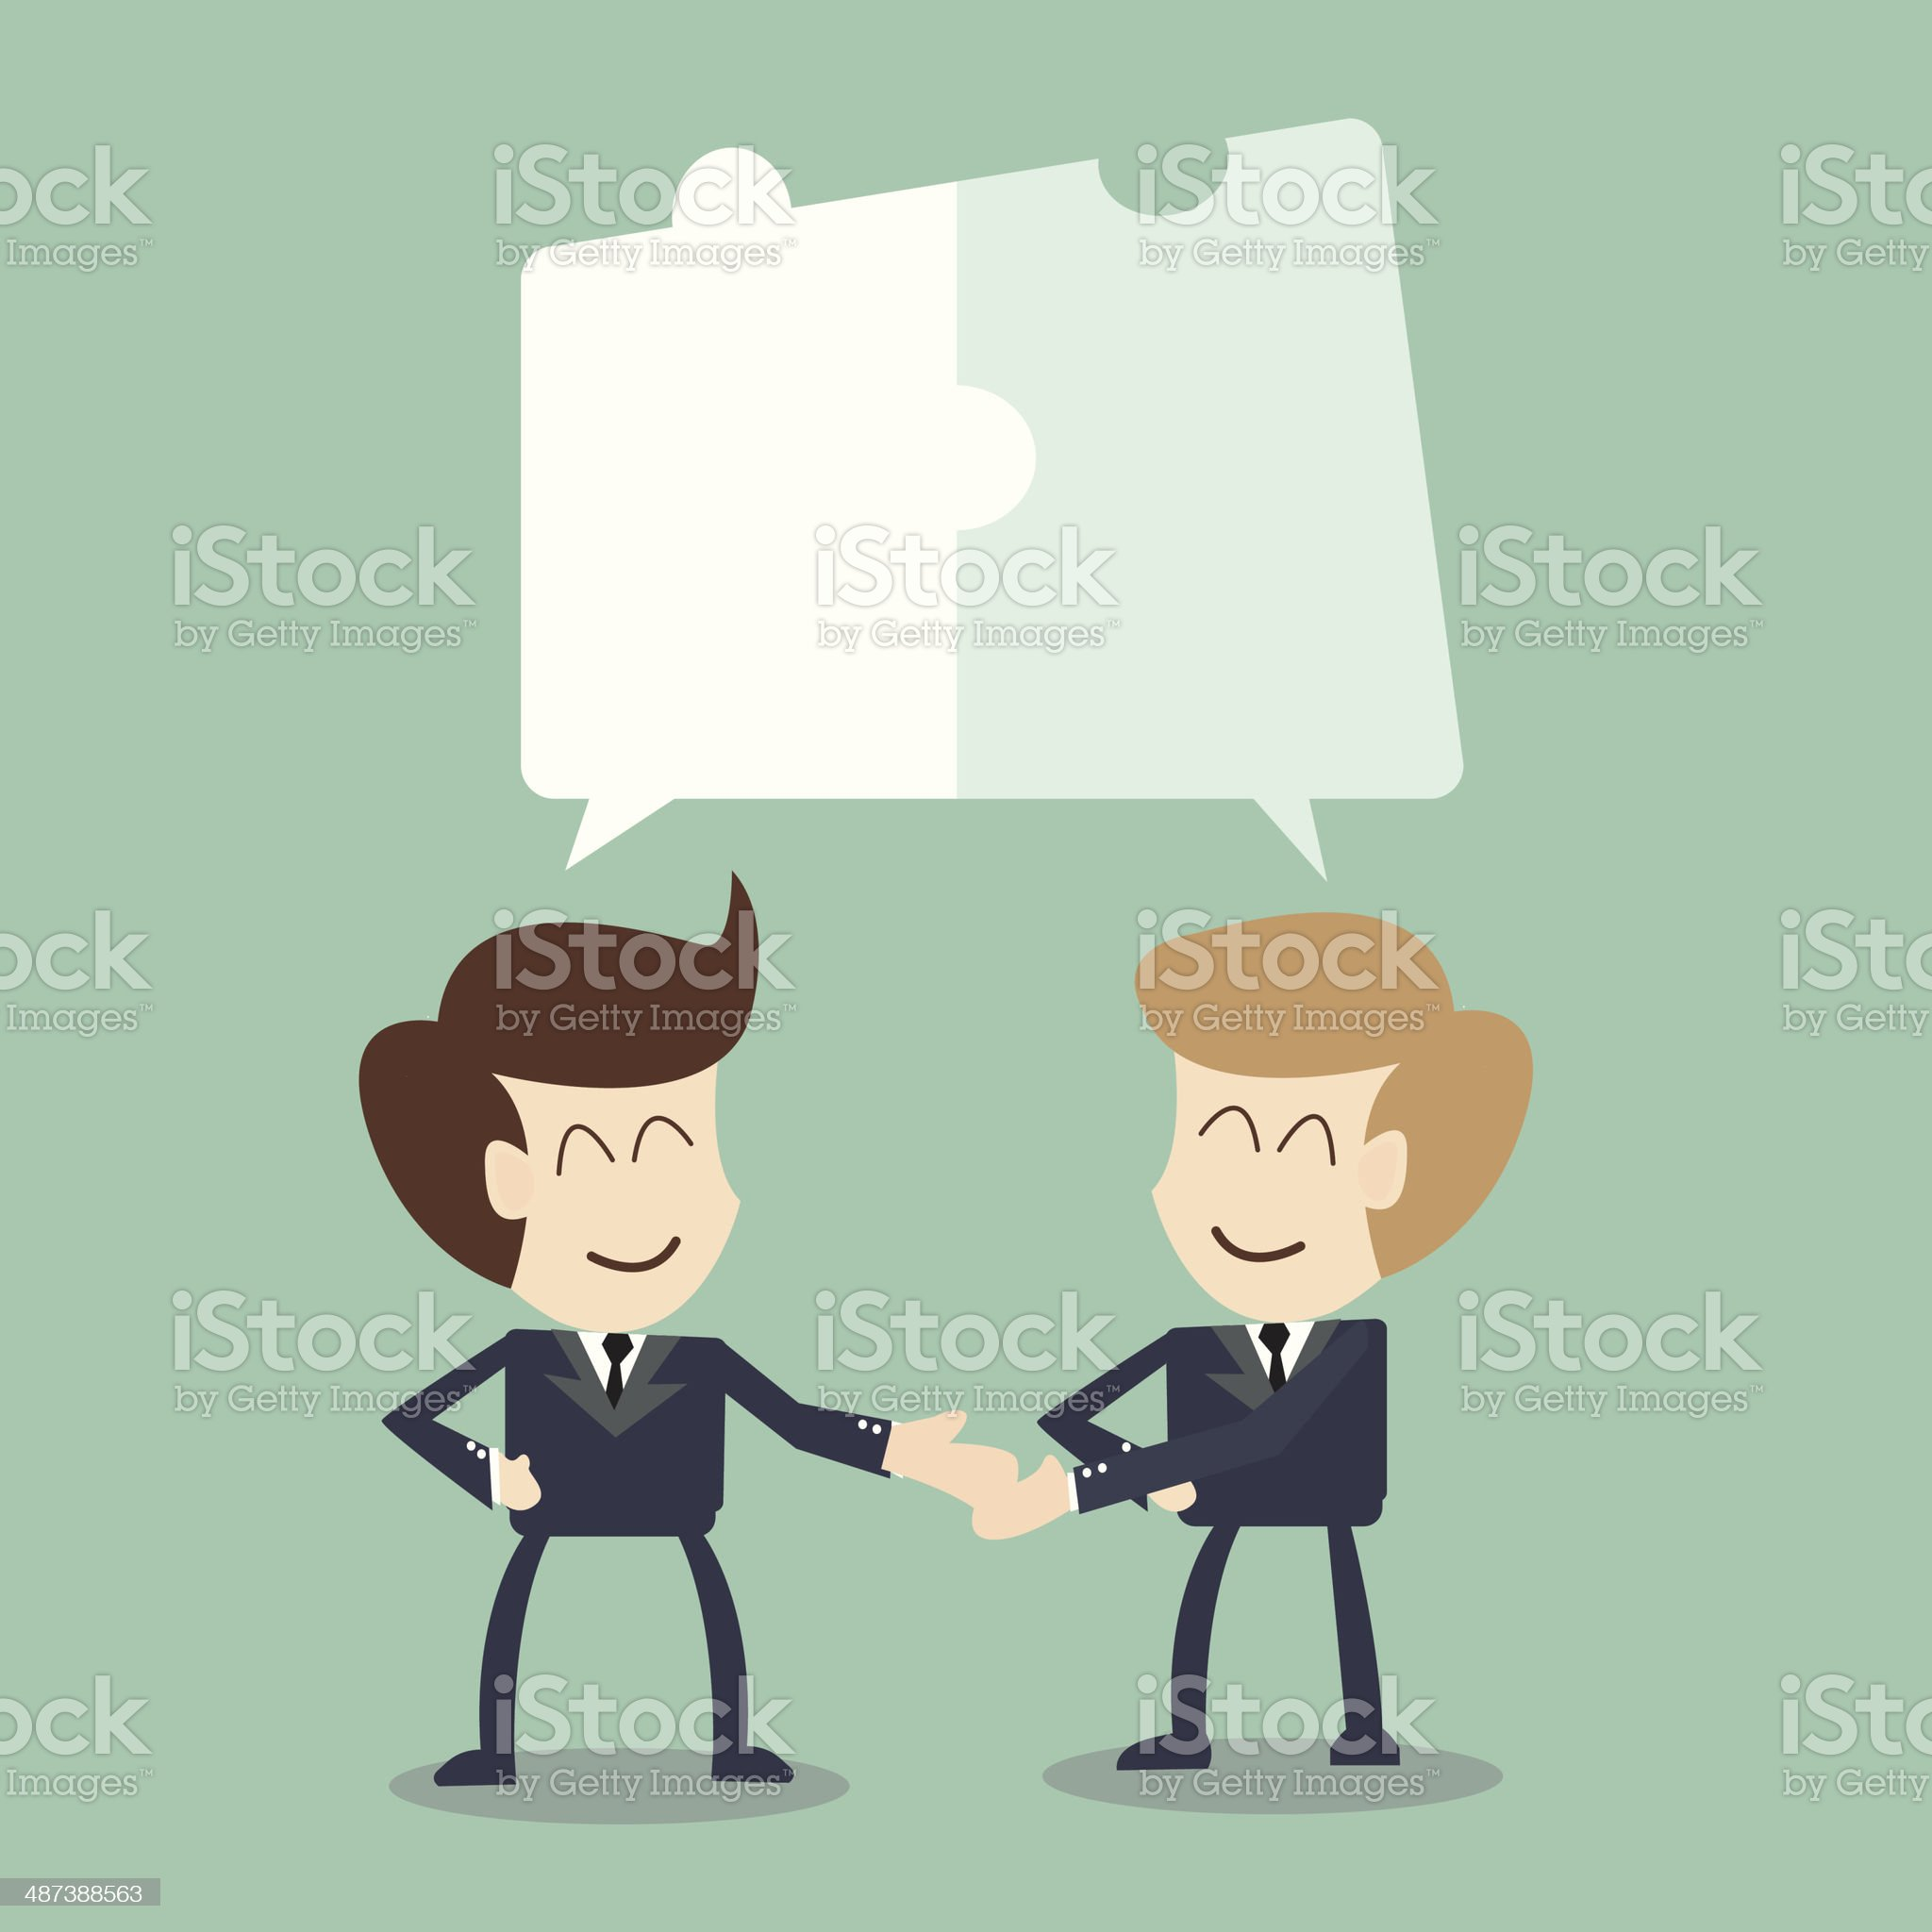 Joint Effort - collaboration concep royalty-free stock vector art